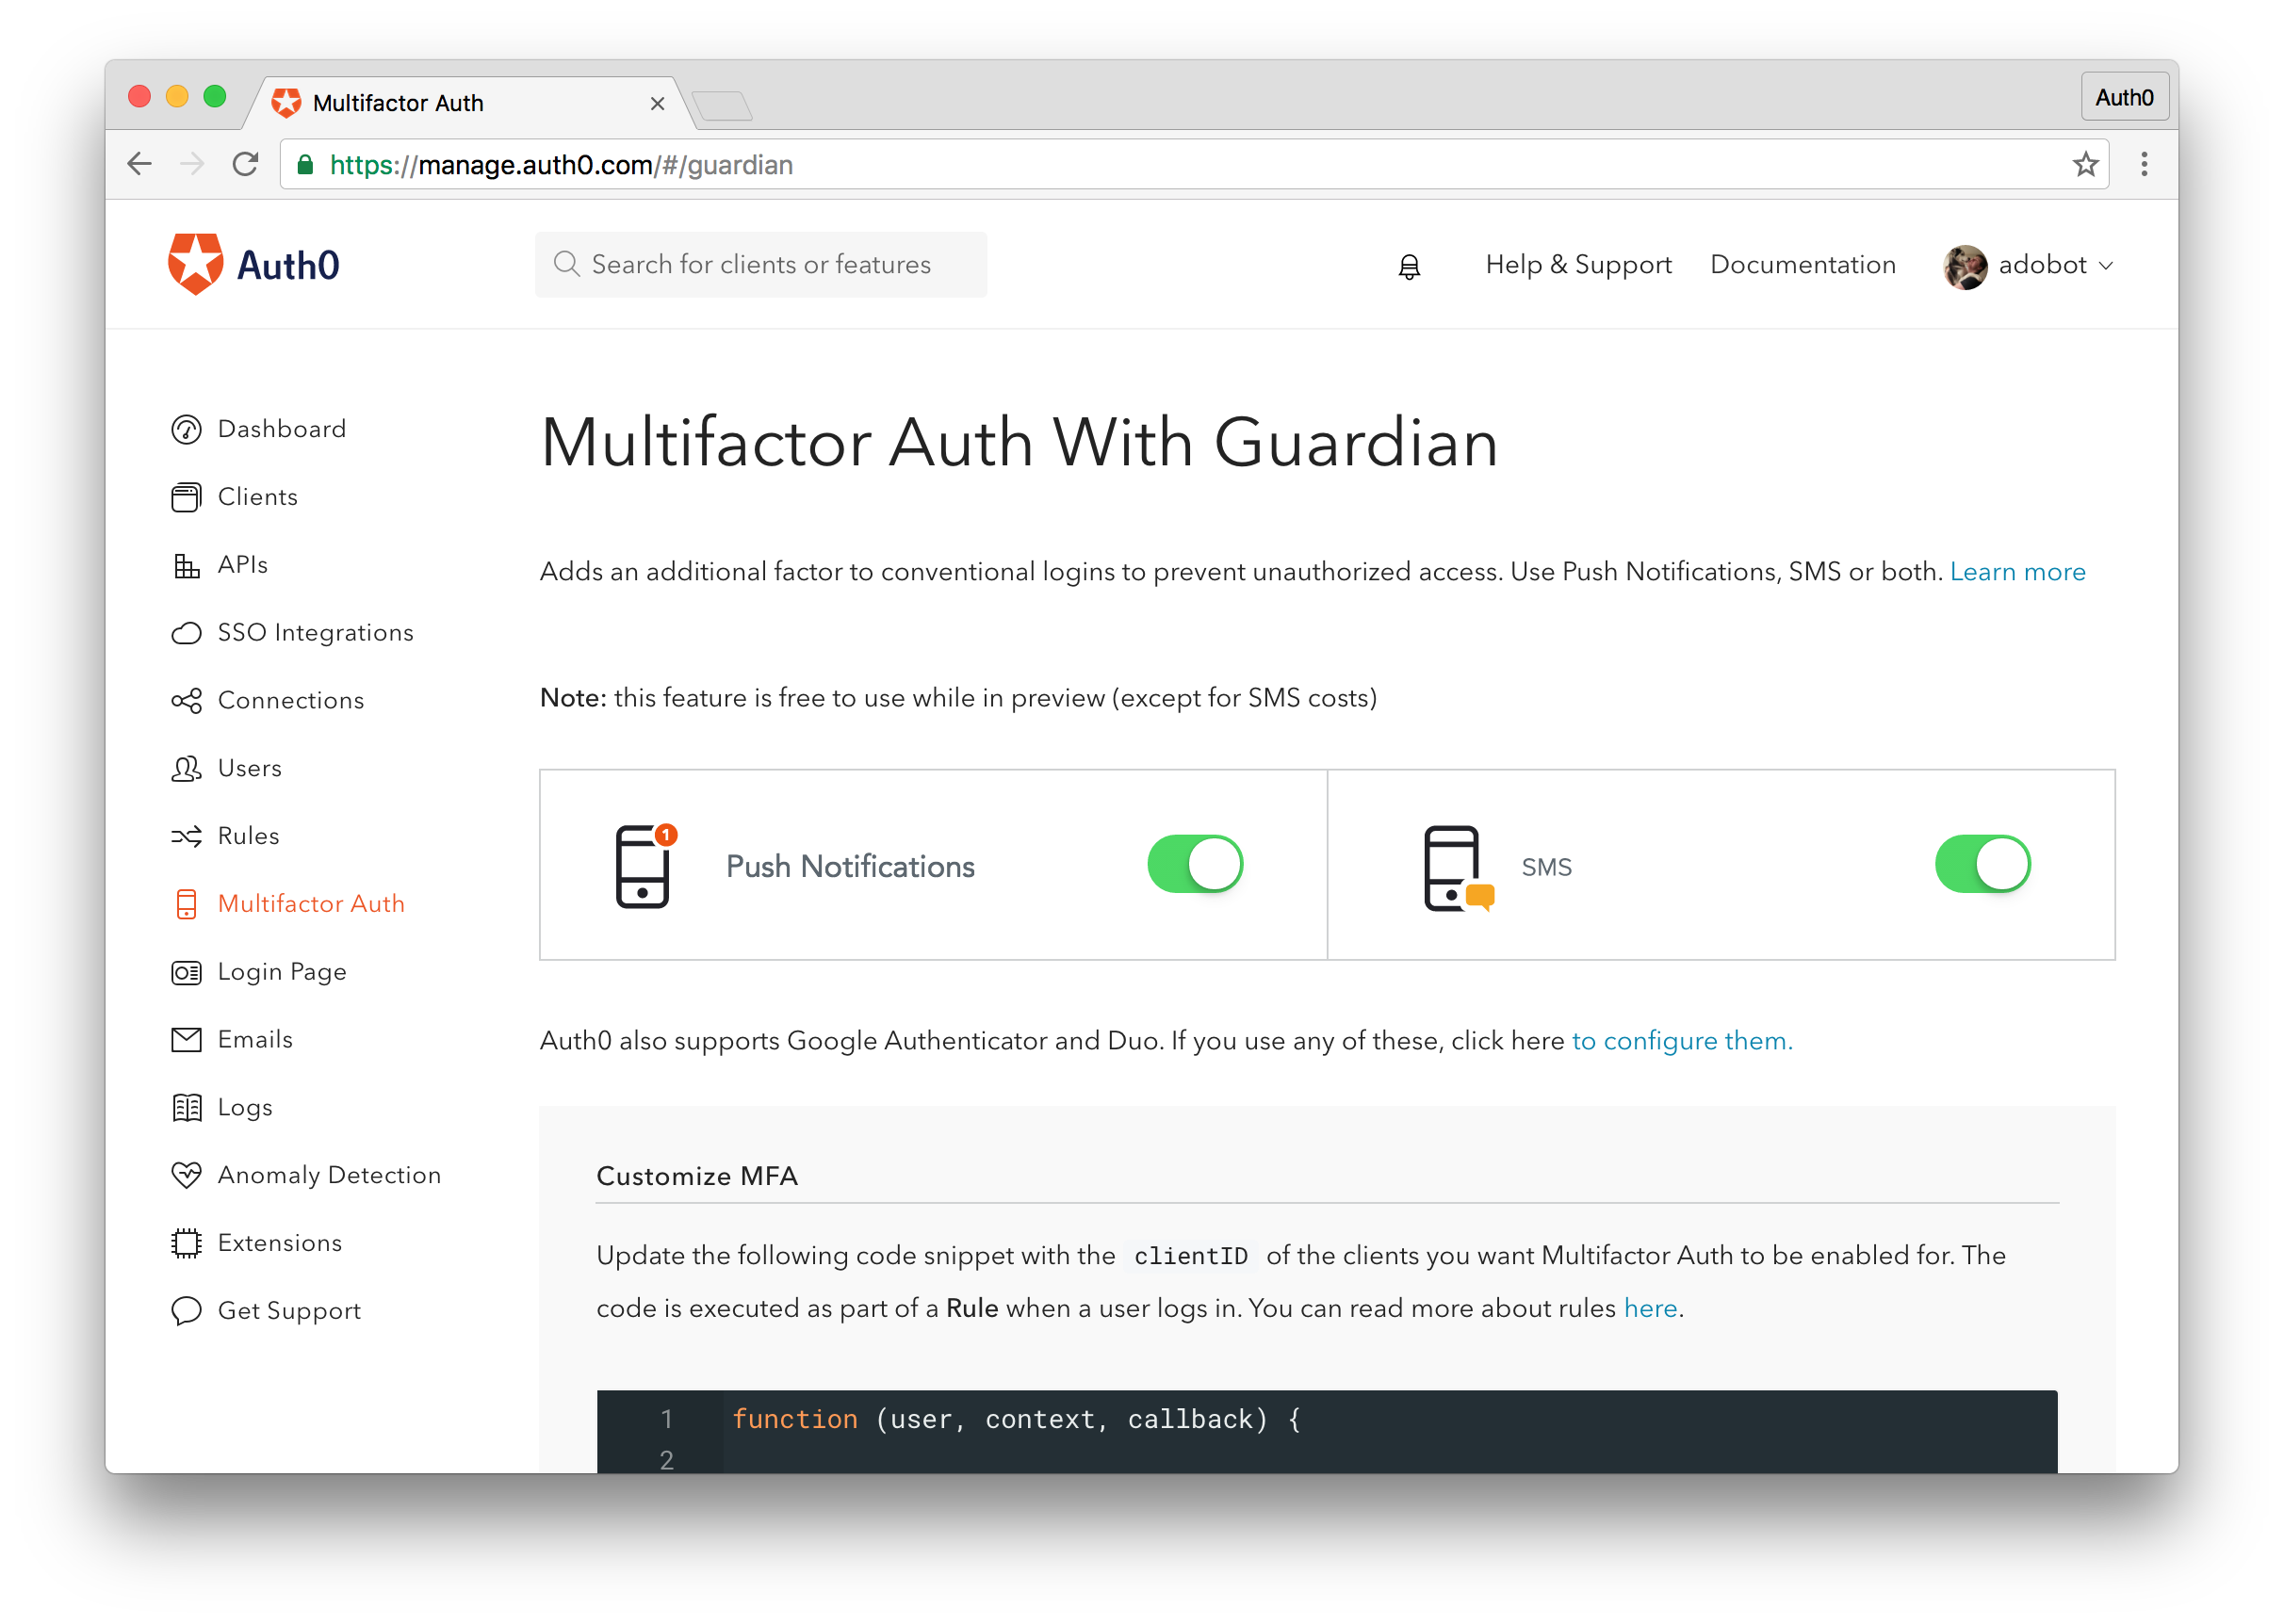 Enable Multifactor Authentication with Guardian